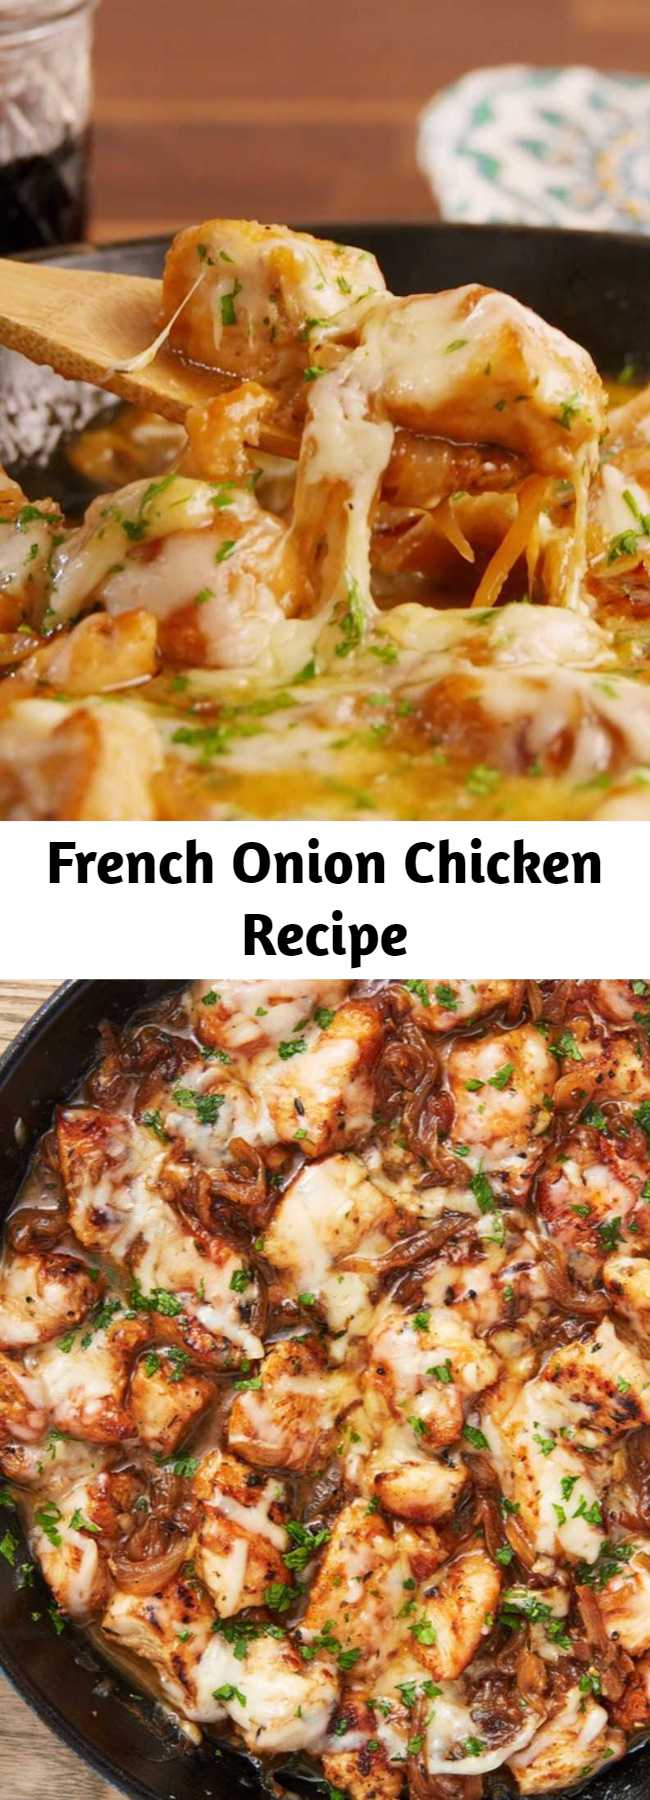 French Onion Chicken Recipe - We love that this recipe comes together in one skillet and in less than an hour, meaning it's WAY faster than French Onion Soup. Dunking good bread into the extra pan sauce is highly encouraged. #easy #recipe #french #onion #chicken #frenchonion #soup #meals #dinner #cozy #comfortfood